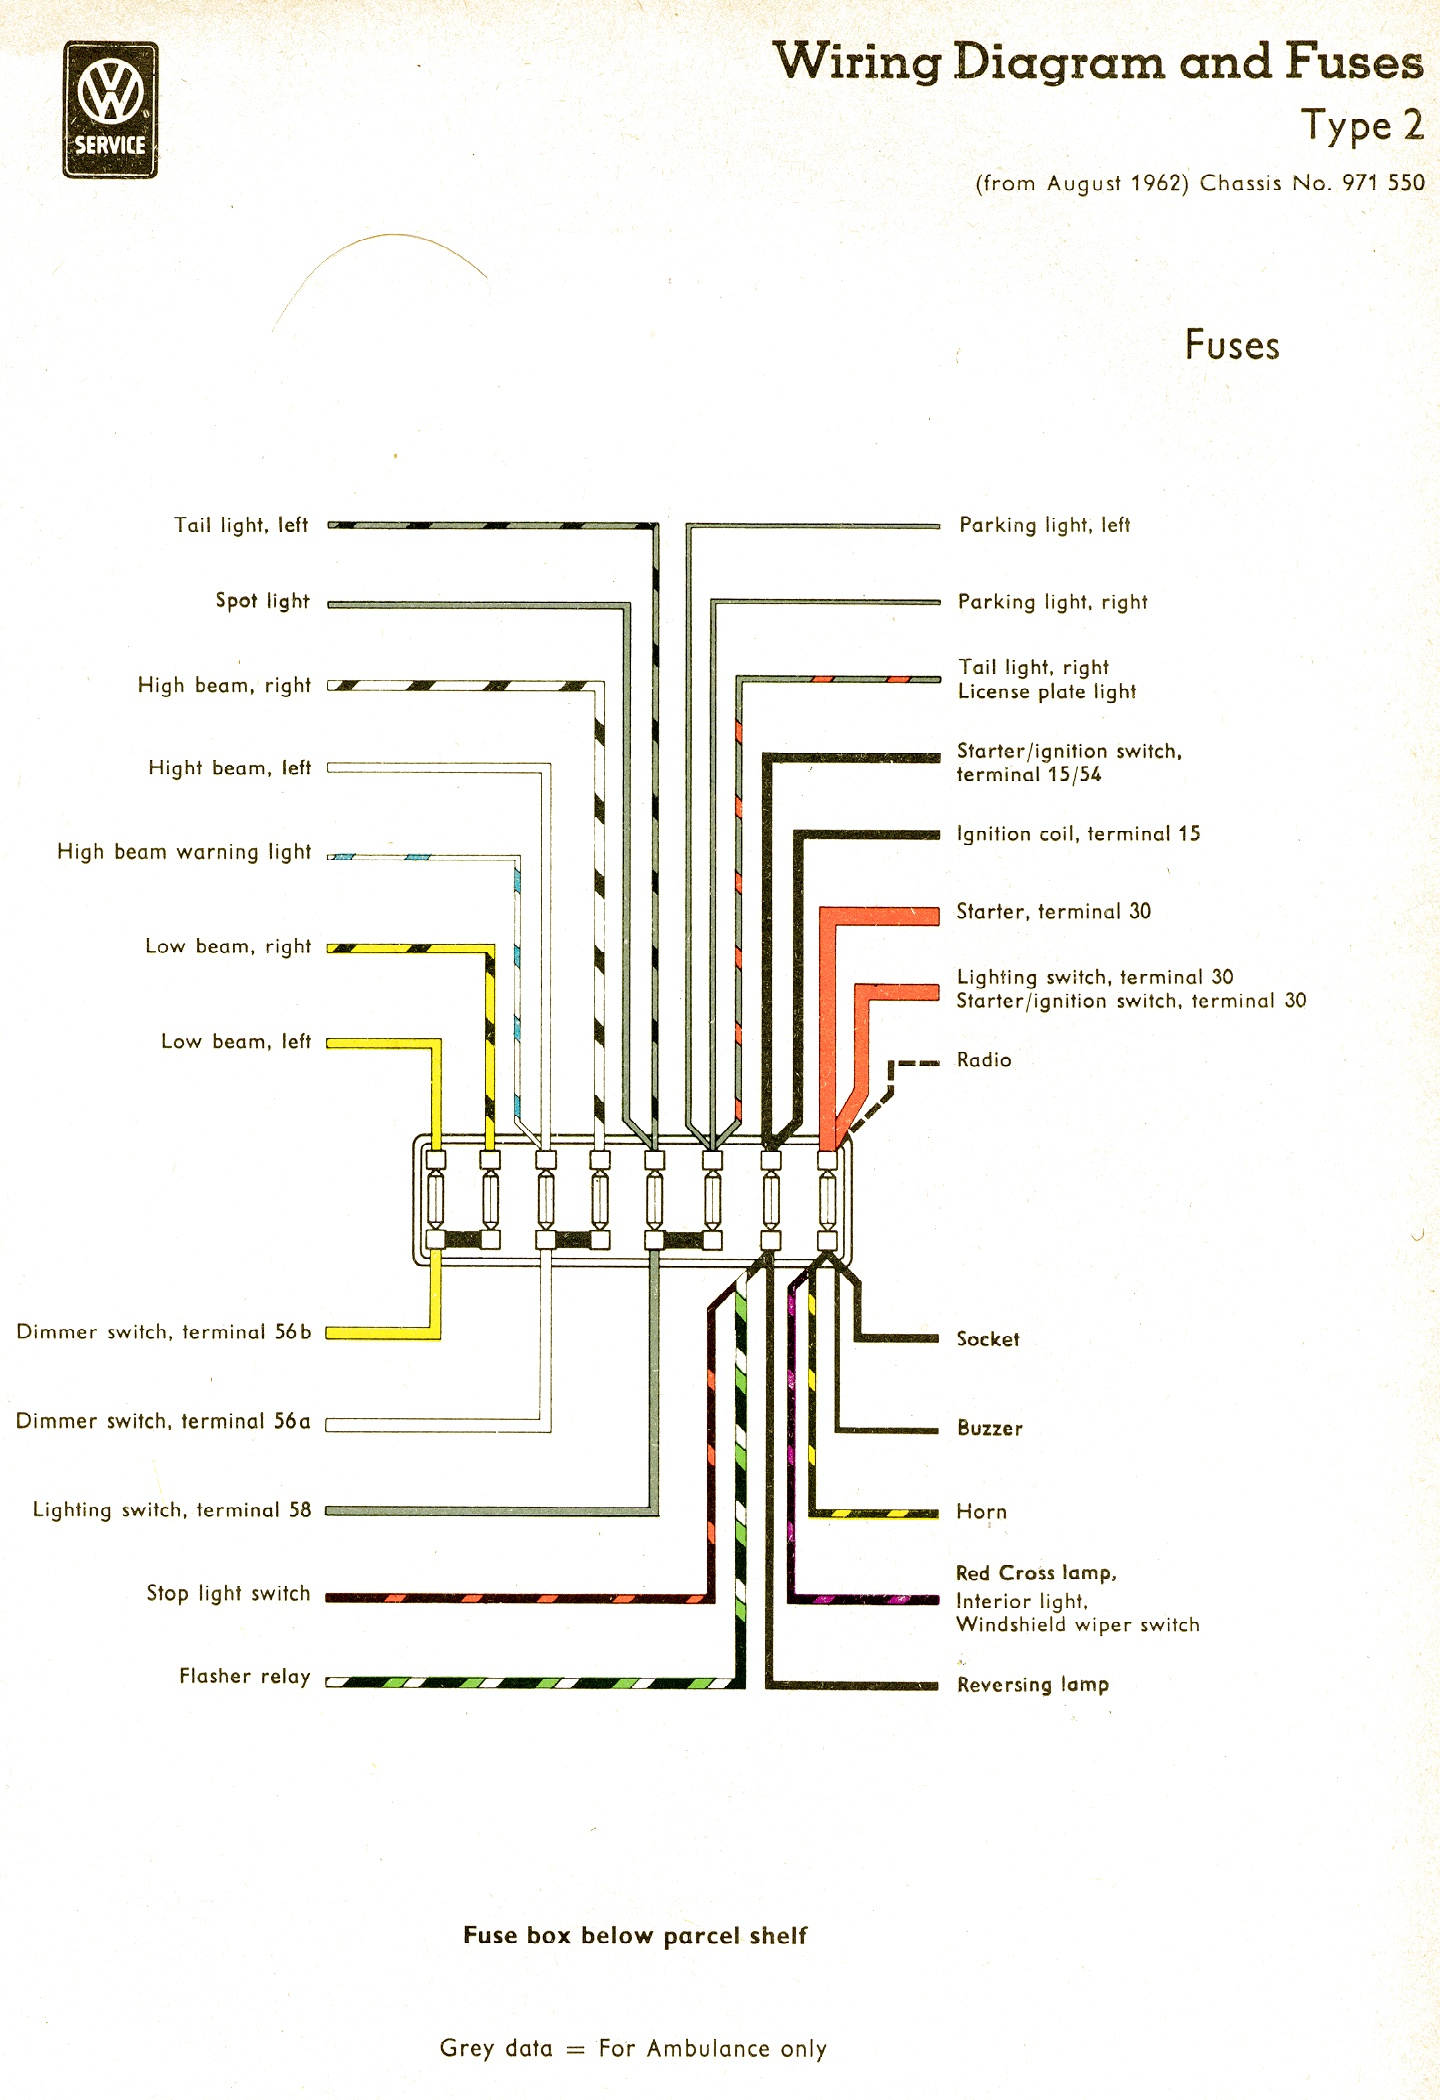 bus 62 fuse vw wiring diagrams 1973 super beetle fuse box diagram at mr168.co